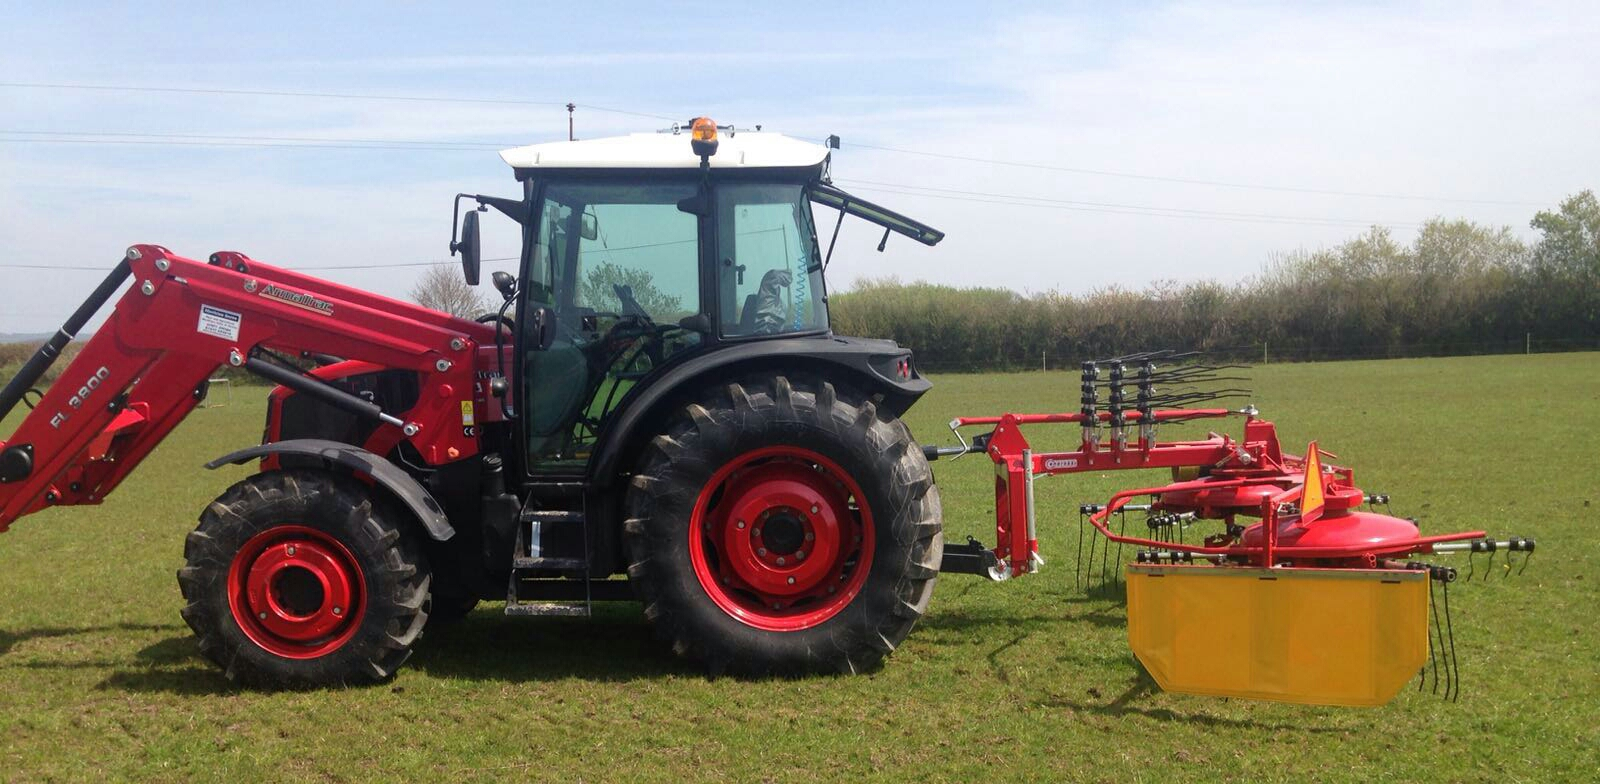 Looking for a tedder rake combi | Page 2 | The Farming Forum